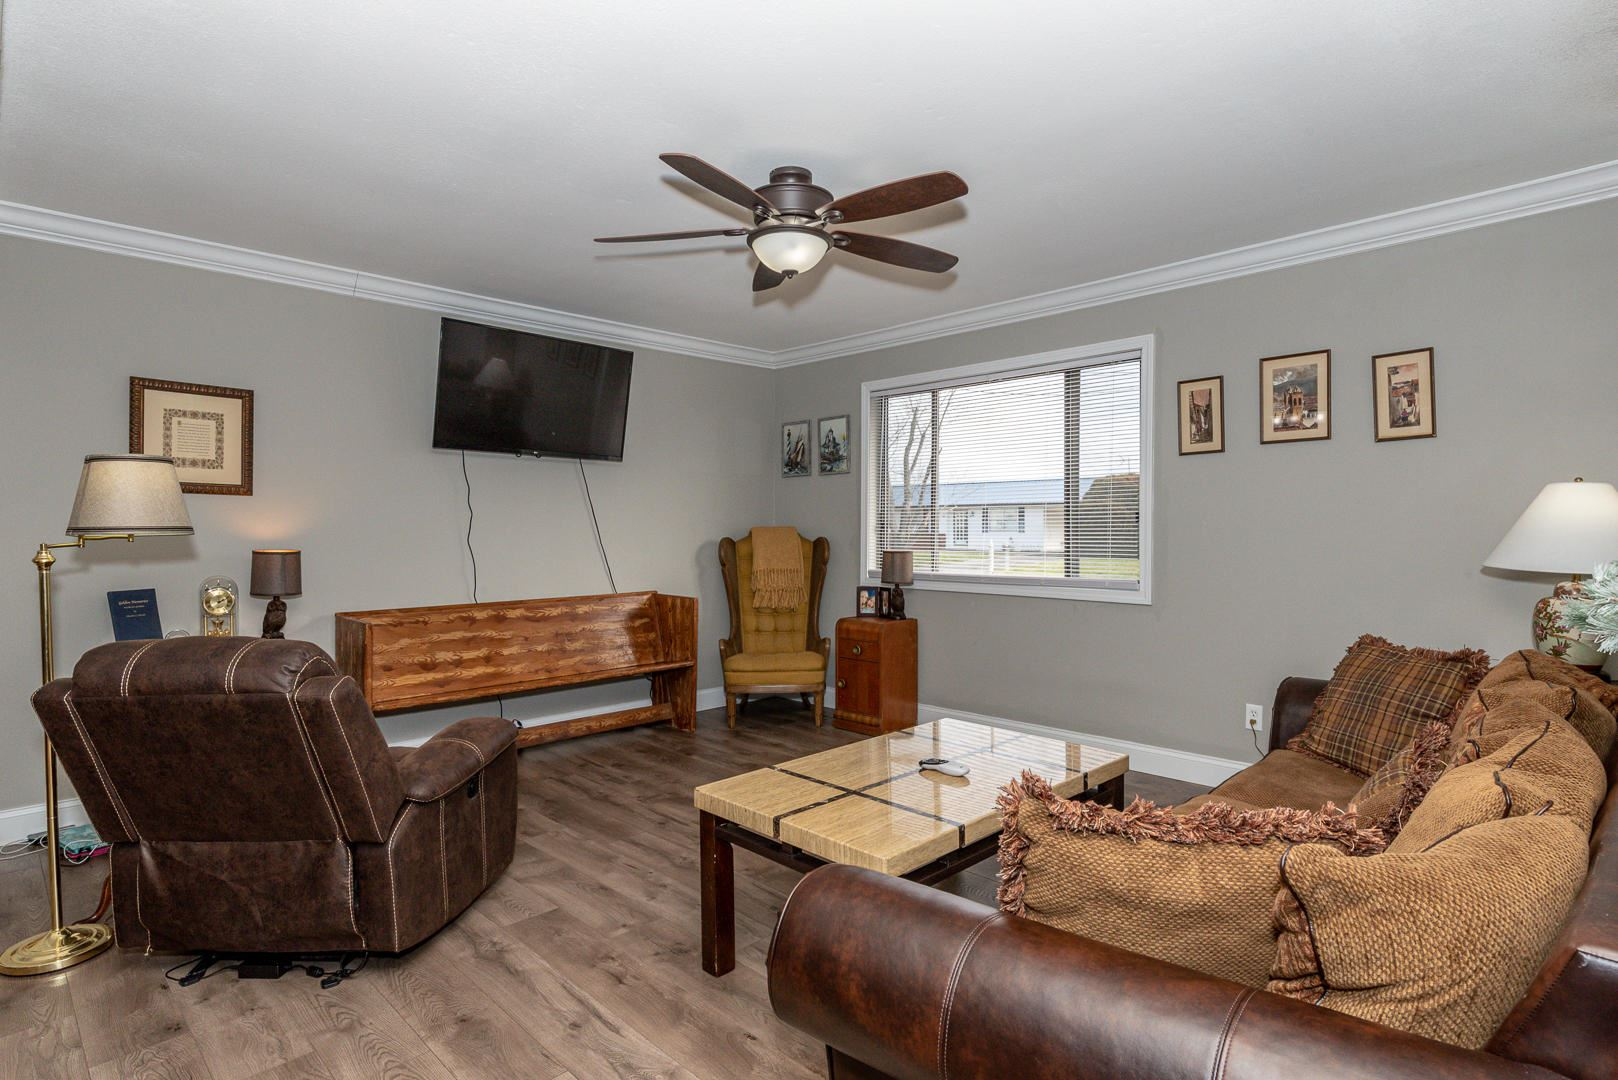 Photo of 3605 Heritage View Drive, Maryville, TN 37804 (MLS # 1140101)